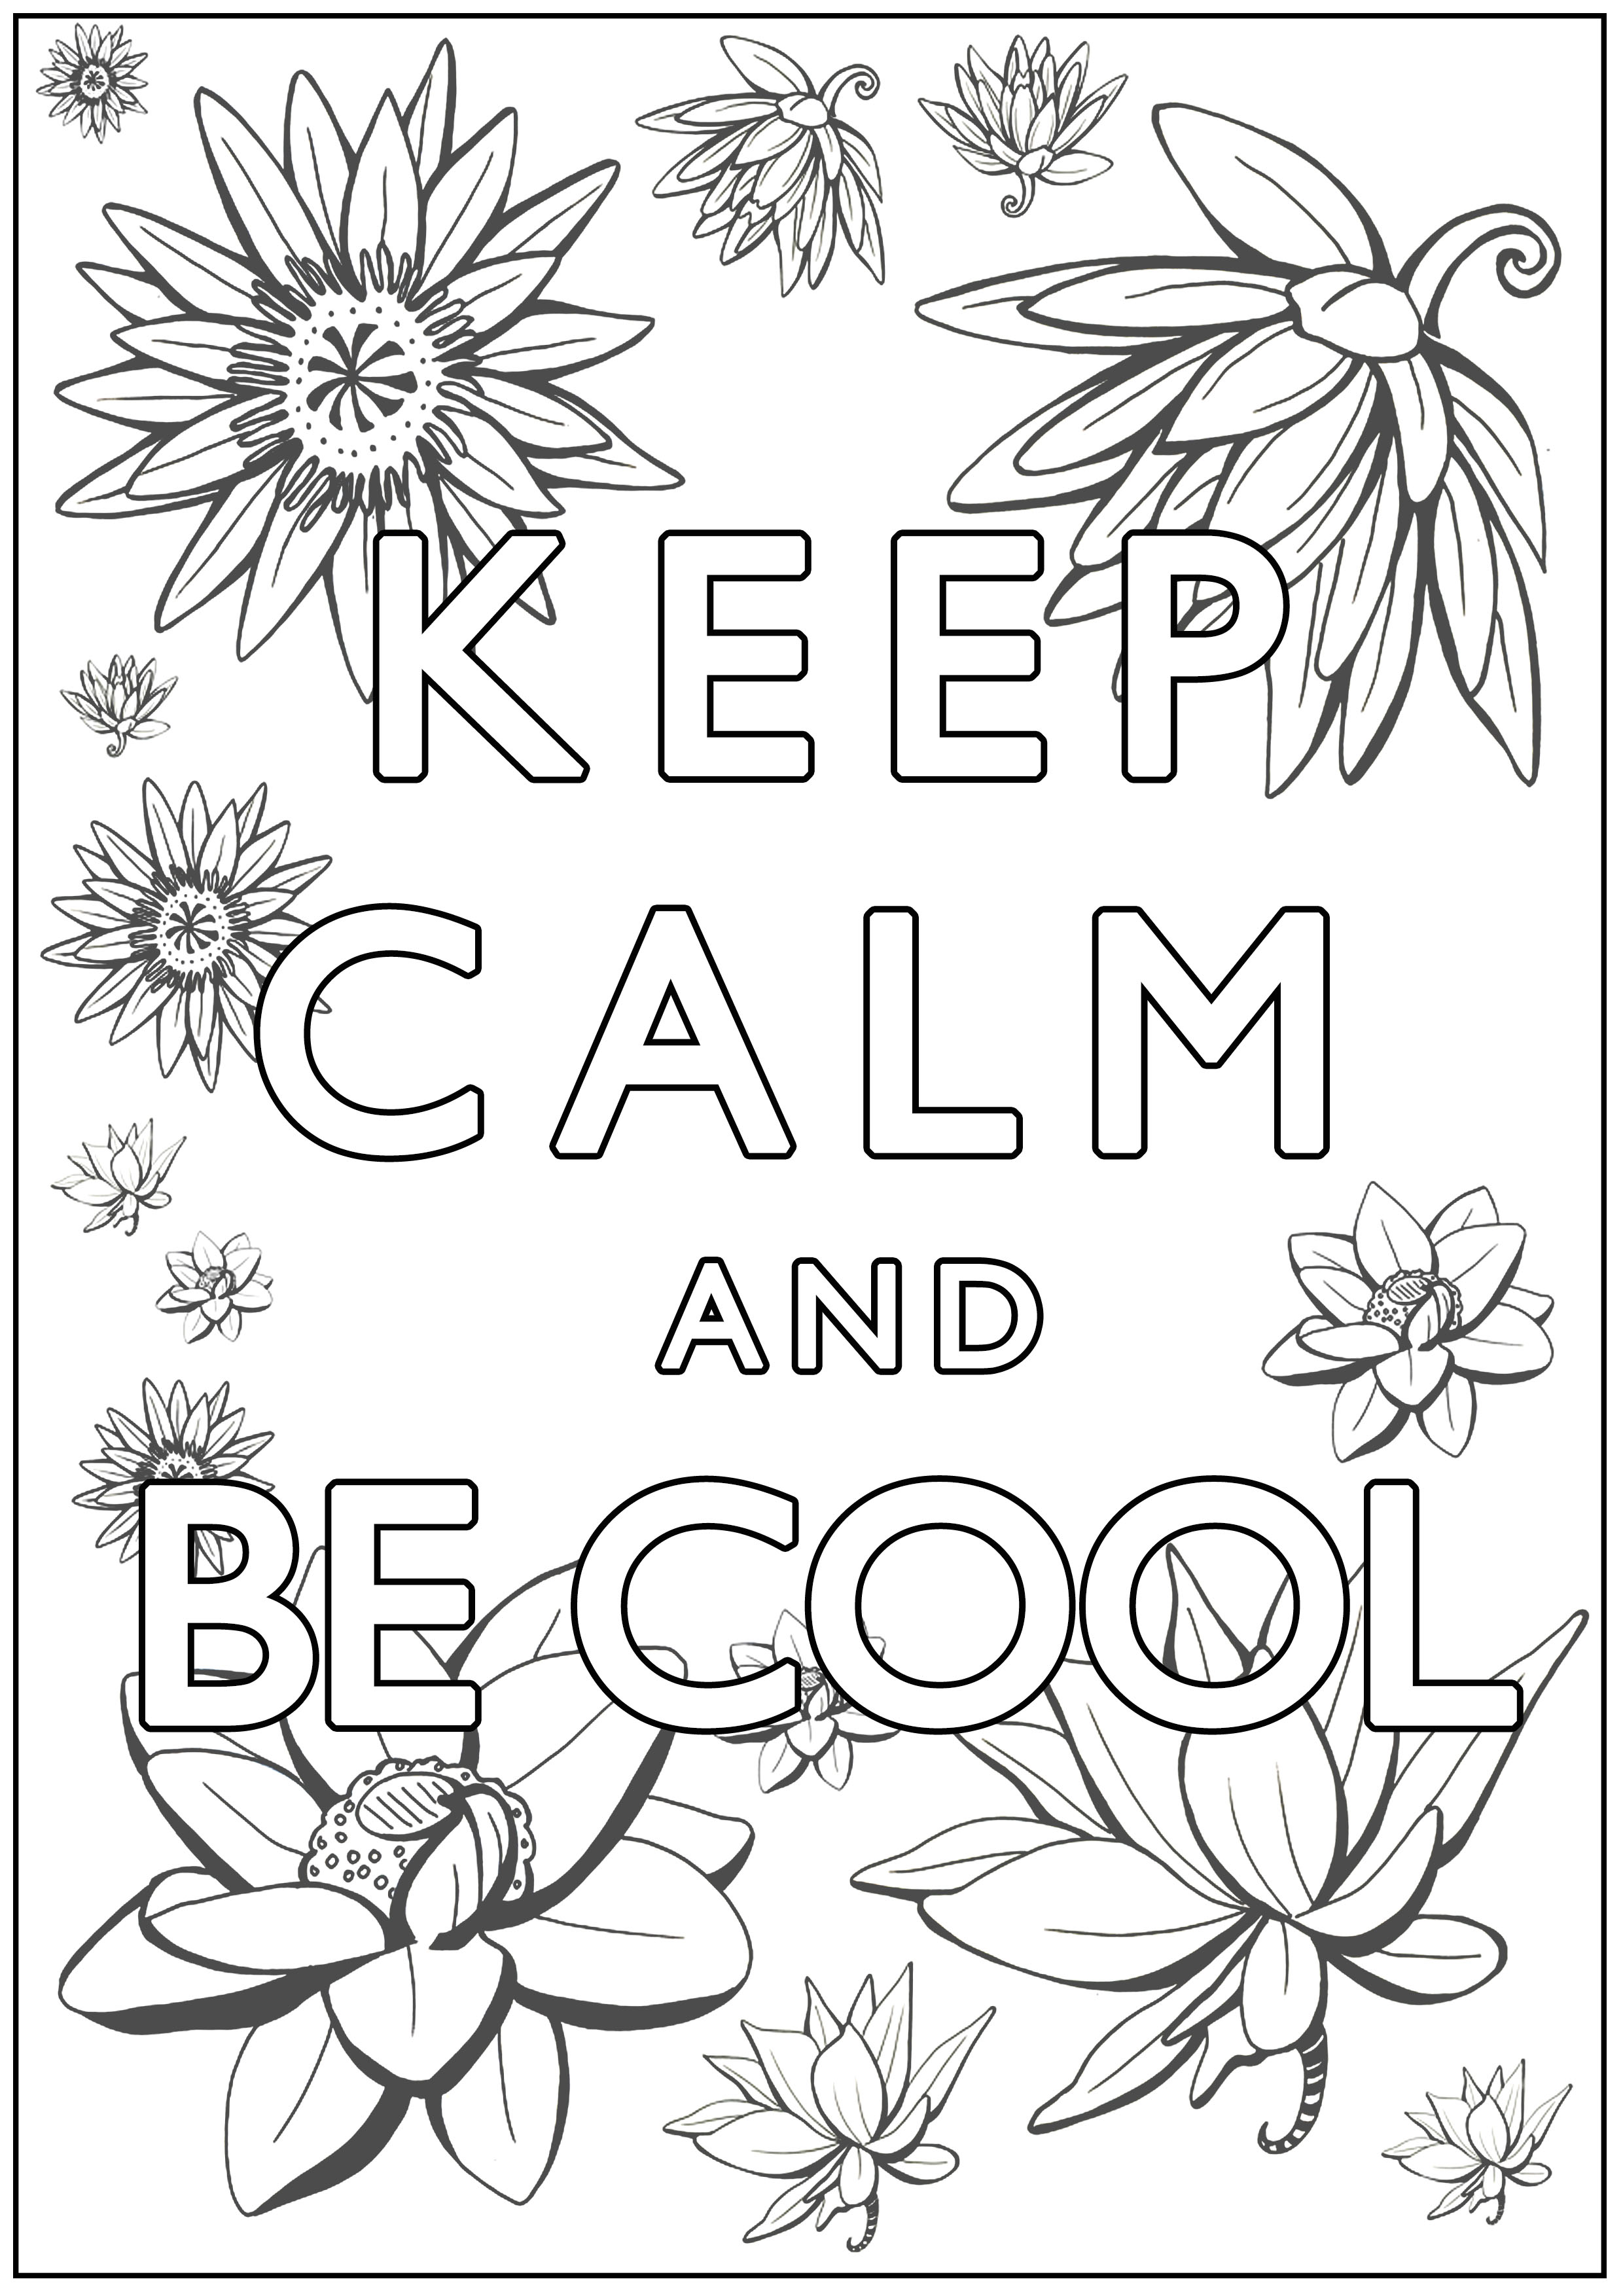 Disegni da Colorare per Adulti : Keep Calm - 5